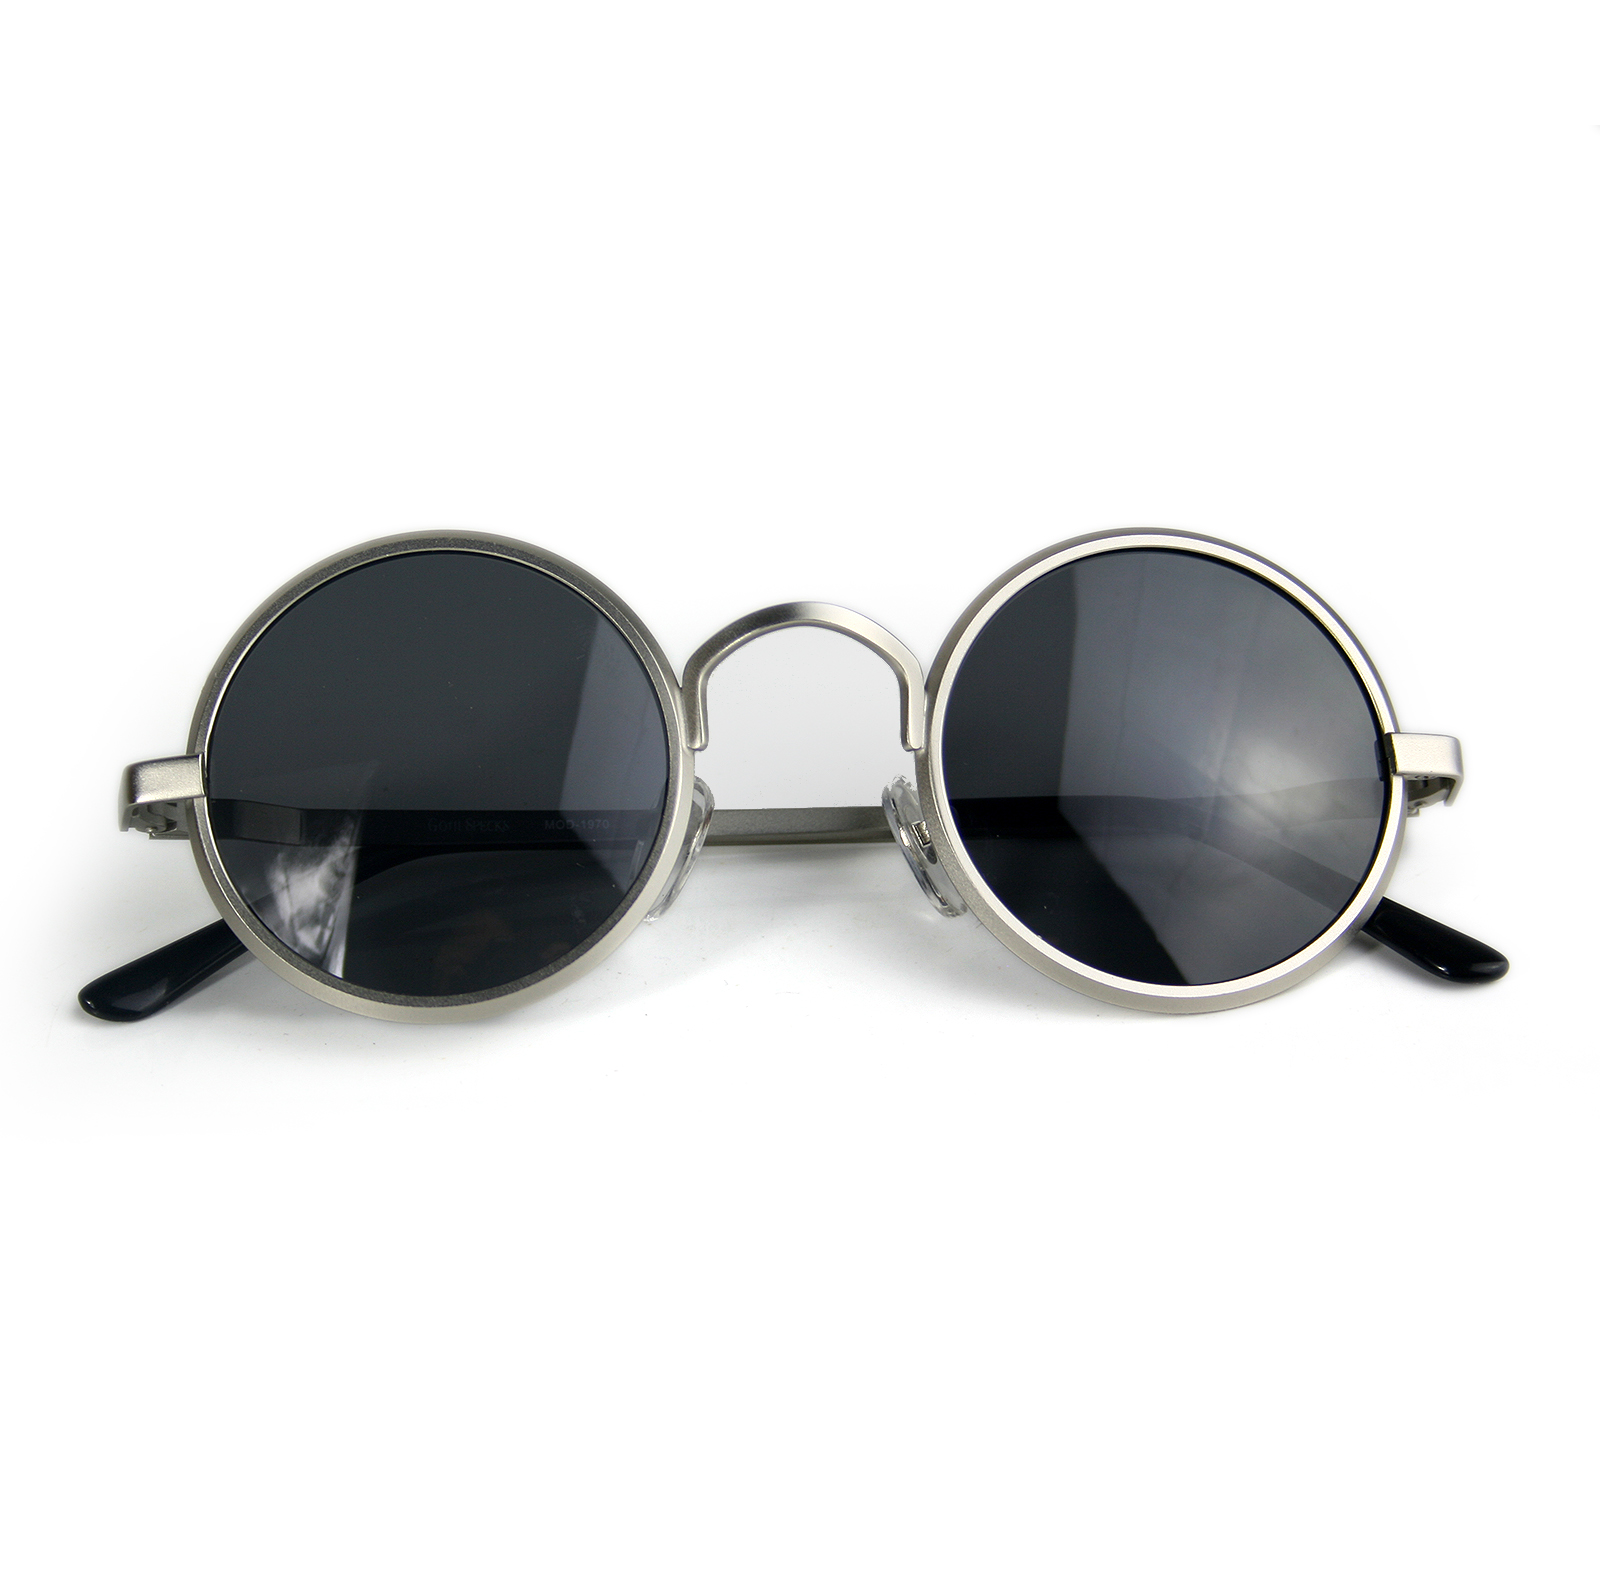 round sunglasses metal frame polarised lens